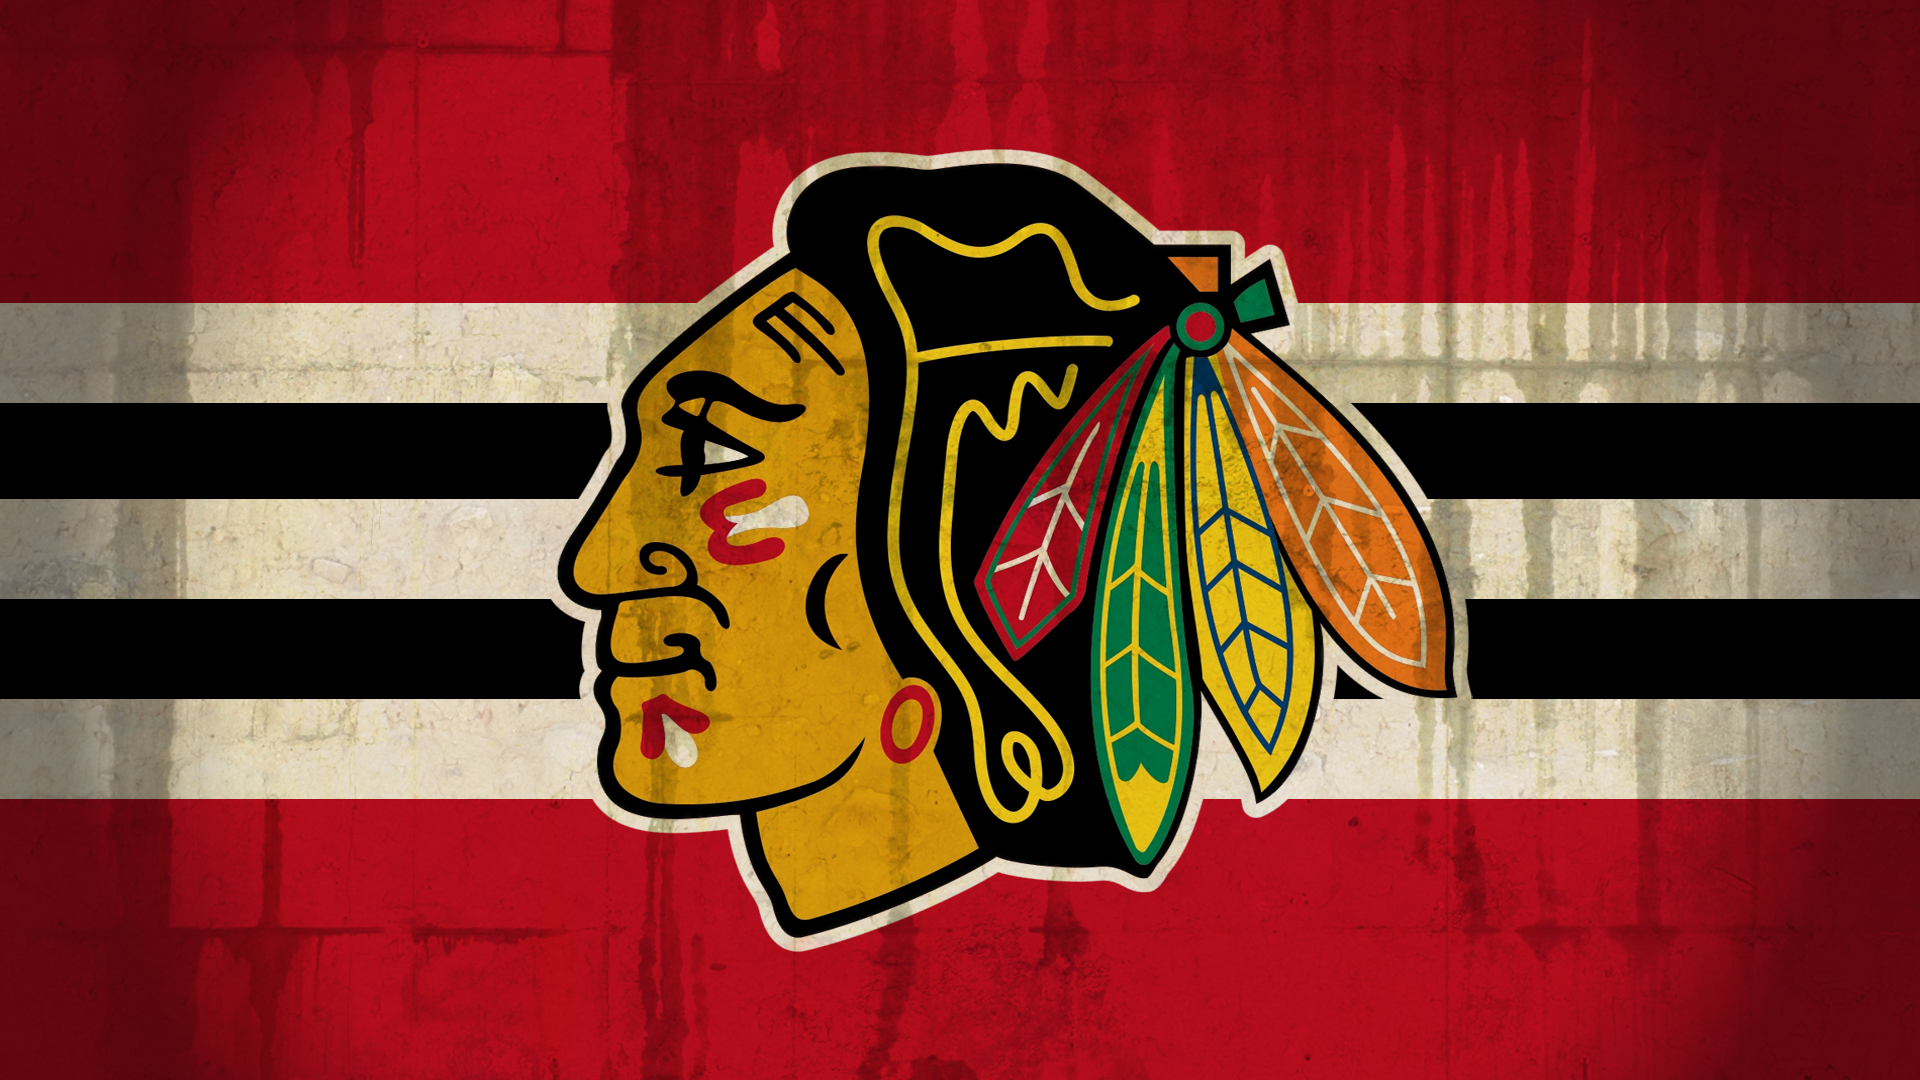 Chicago Blackhawks Wallpaper 1920x1080 69223